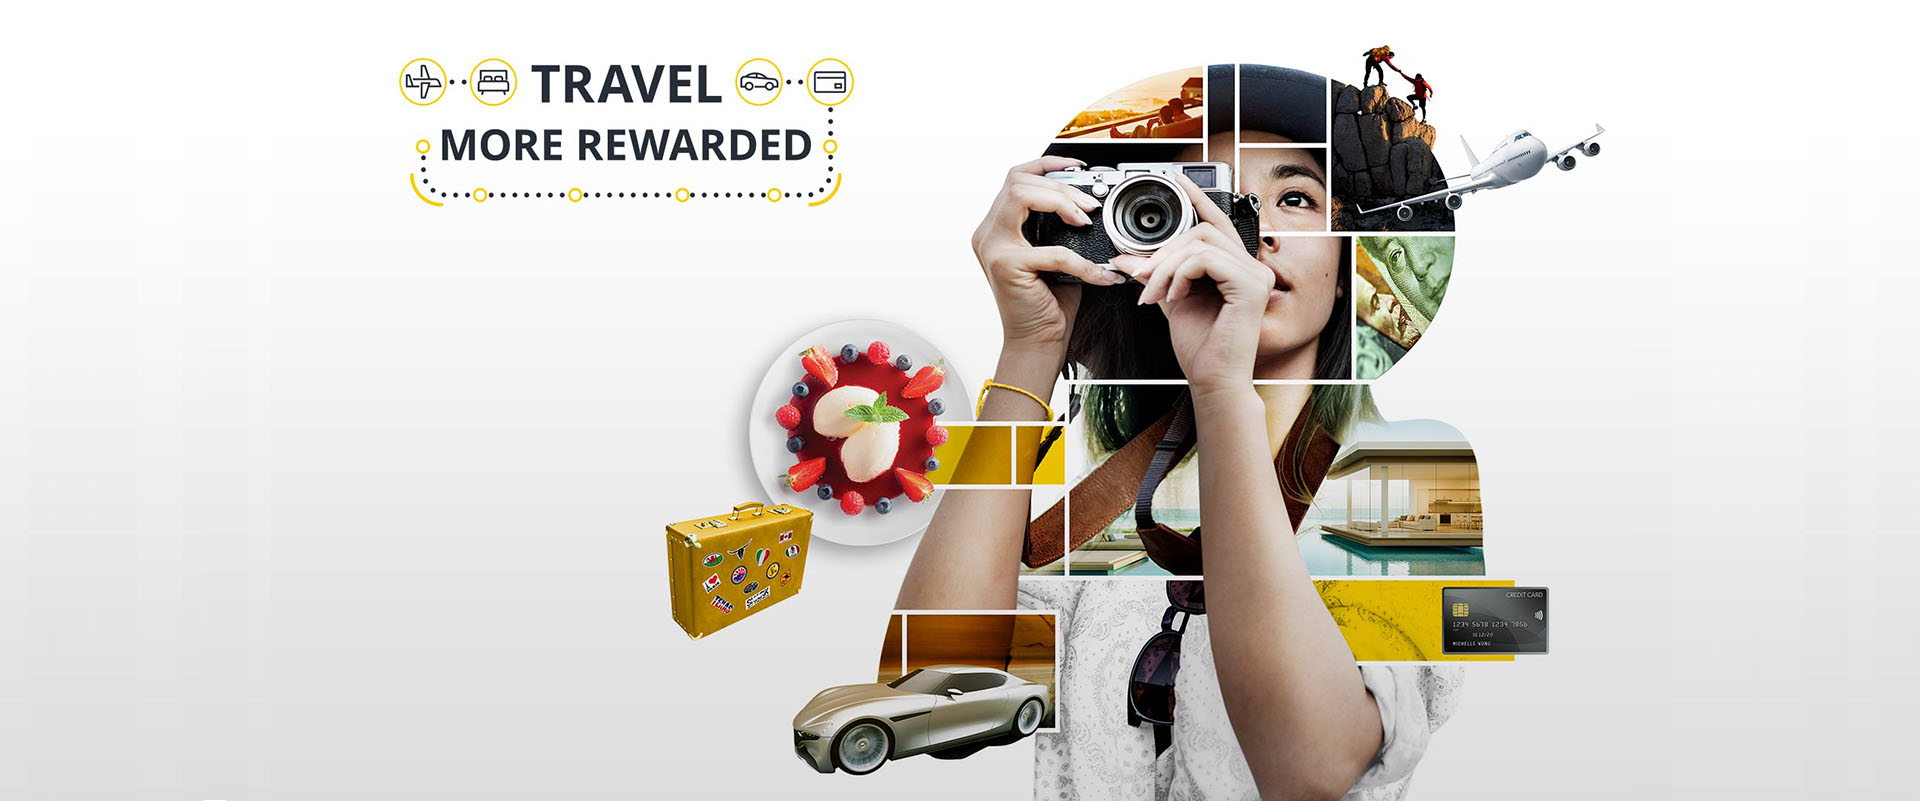 Travel More Rewarded